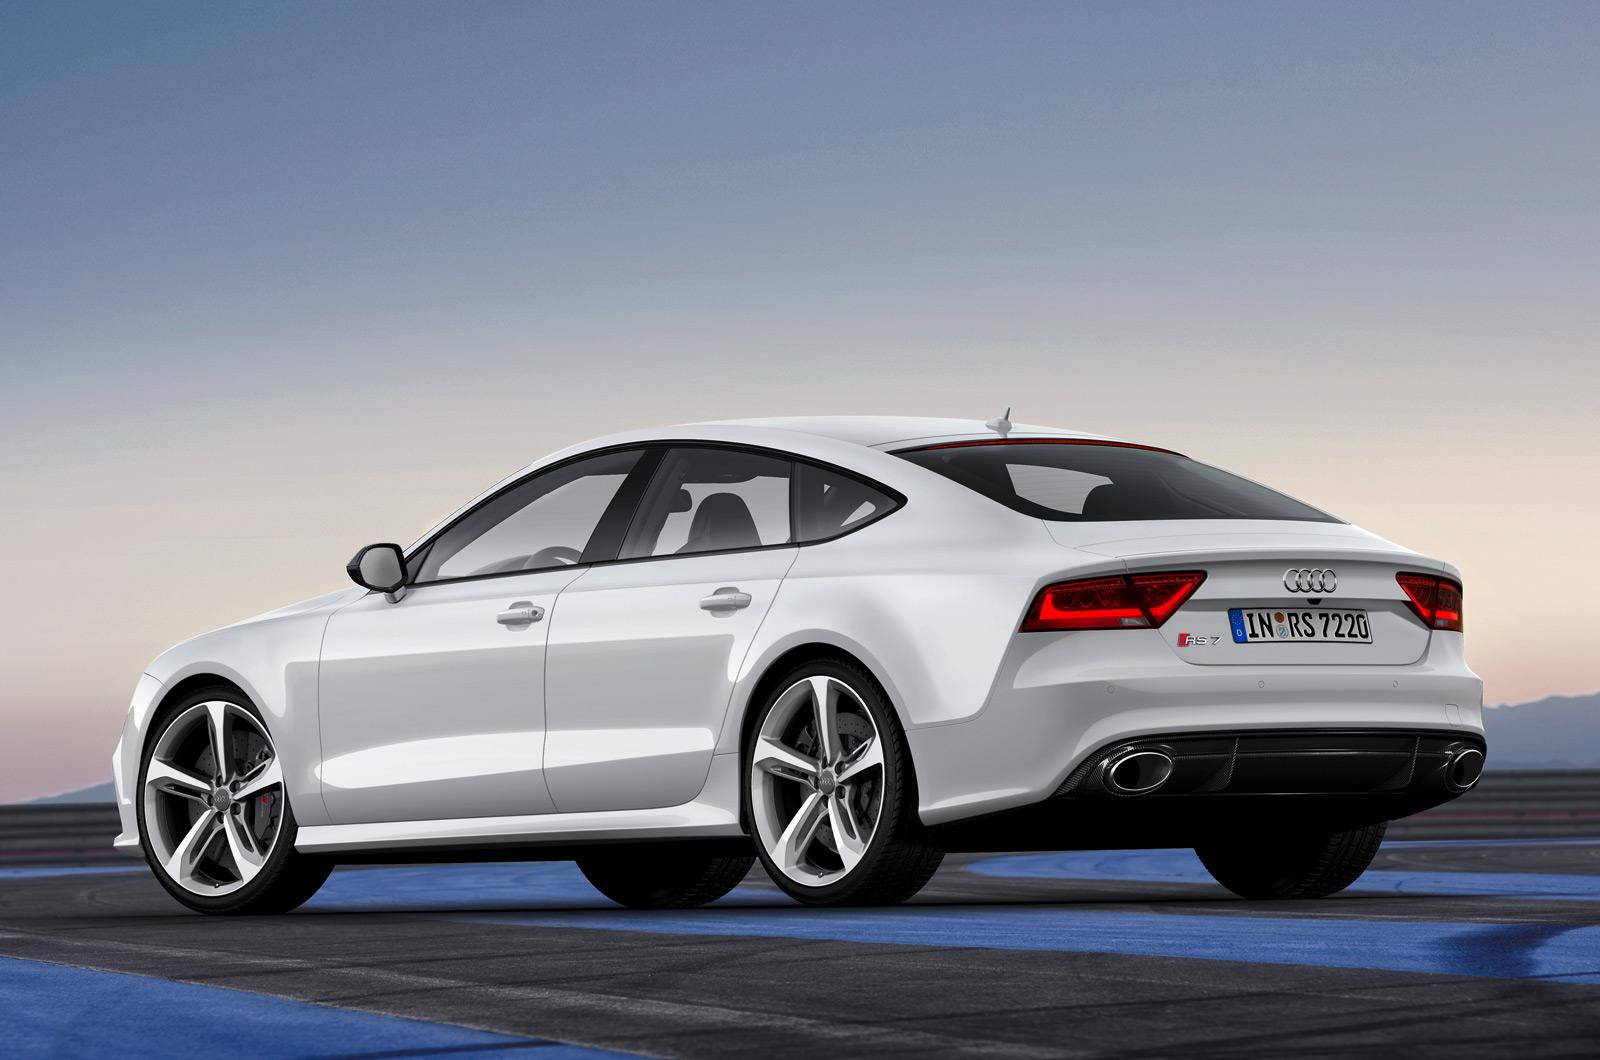 New Audi Rs7 Sportback Revealed Ebeasts Com